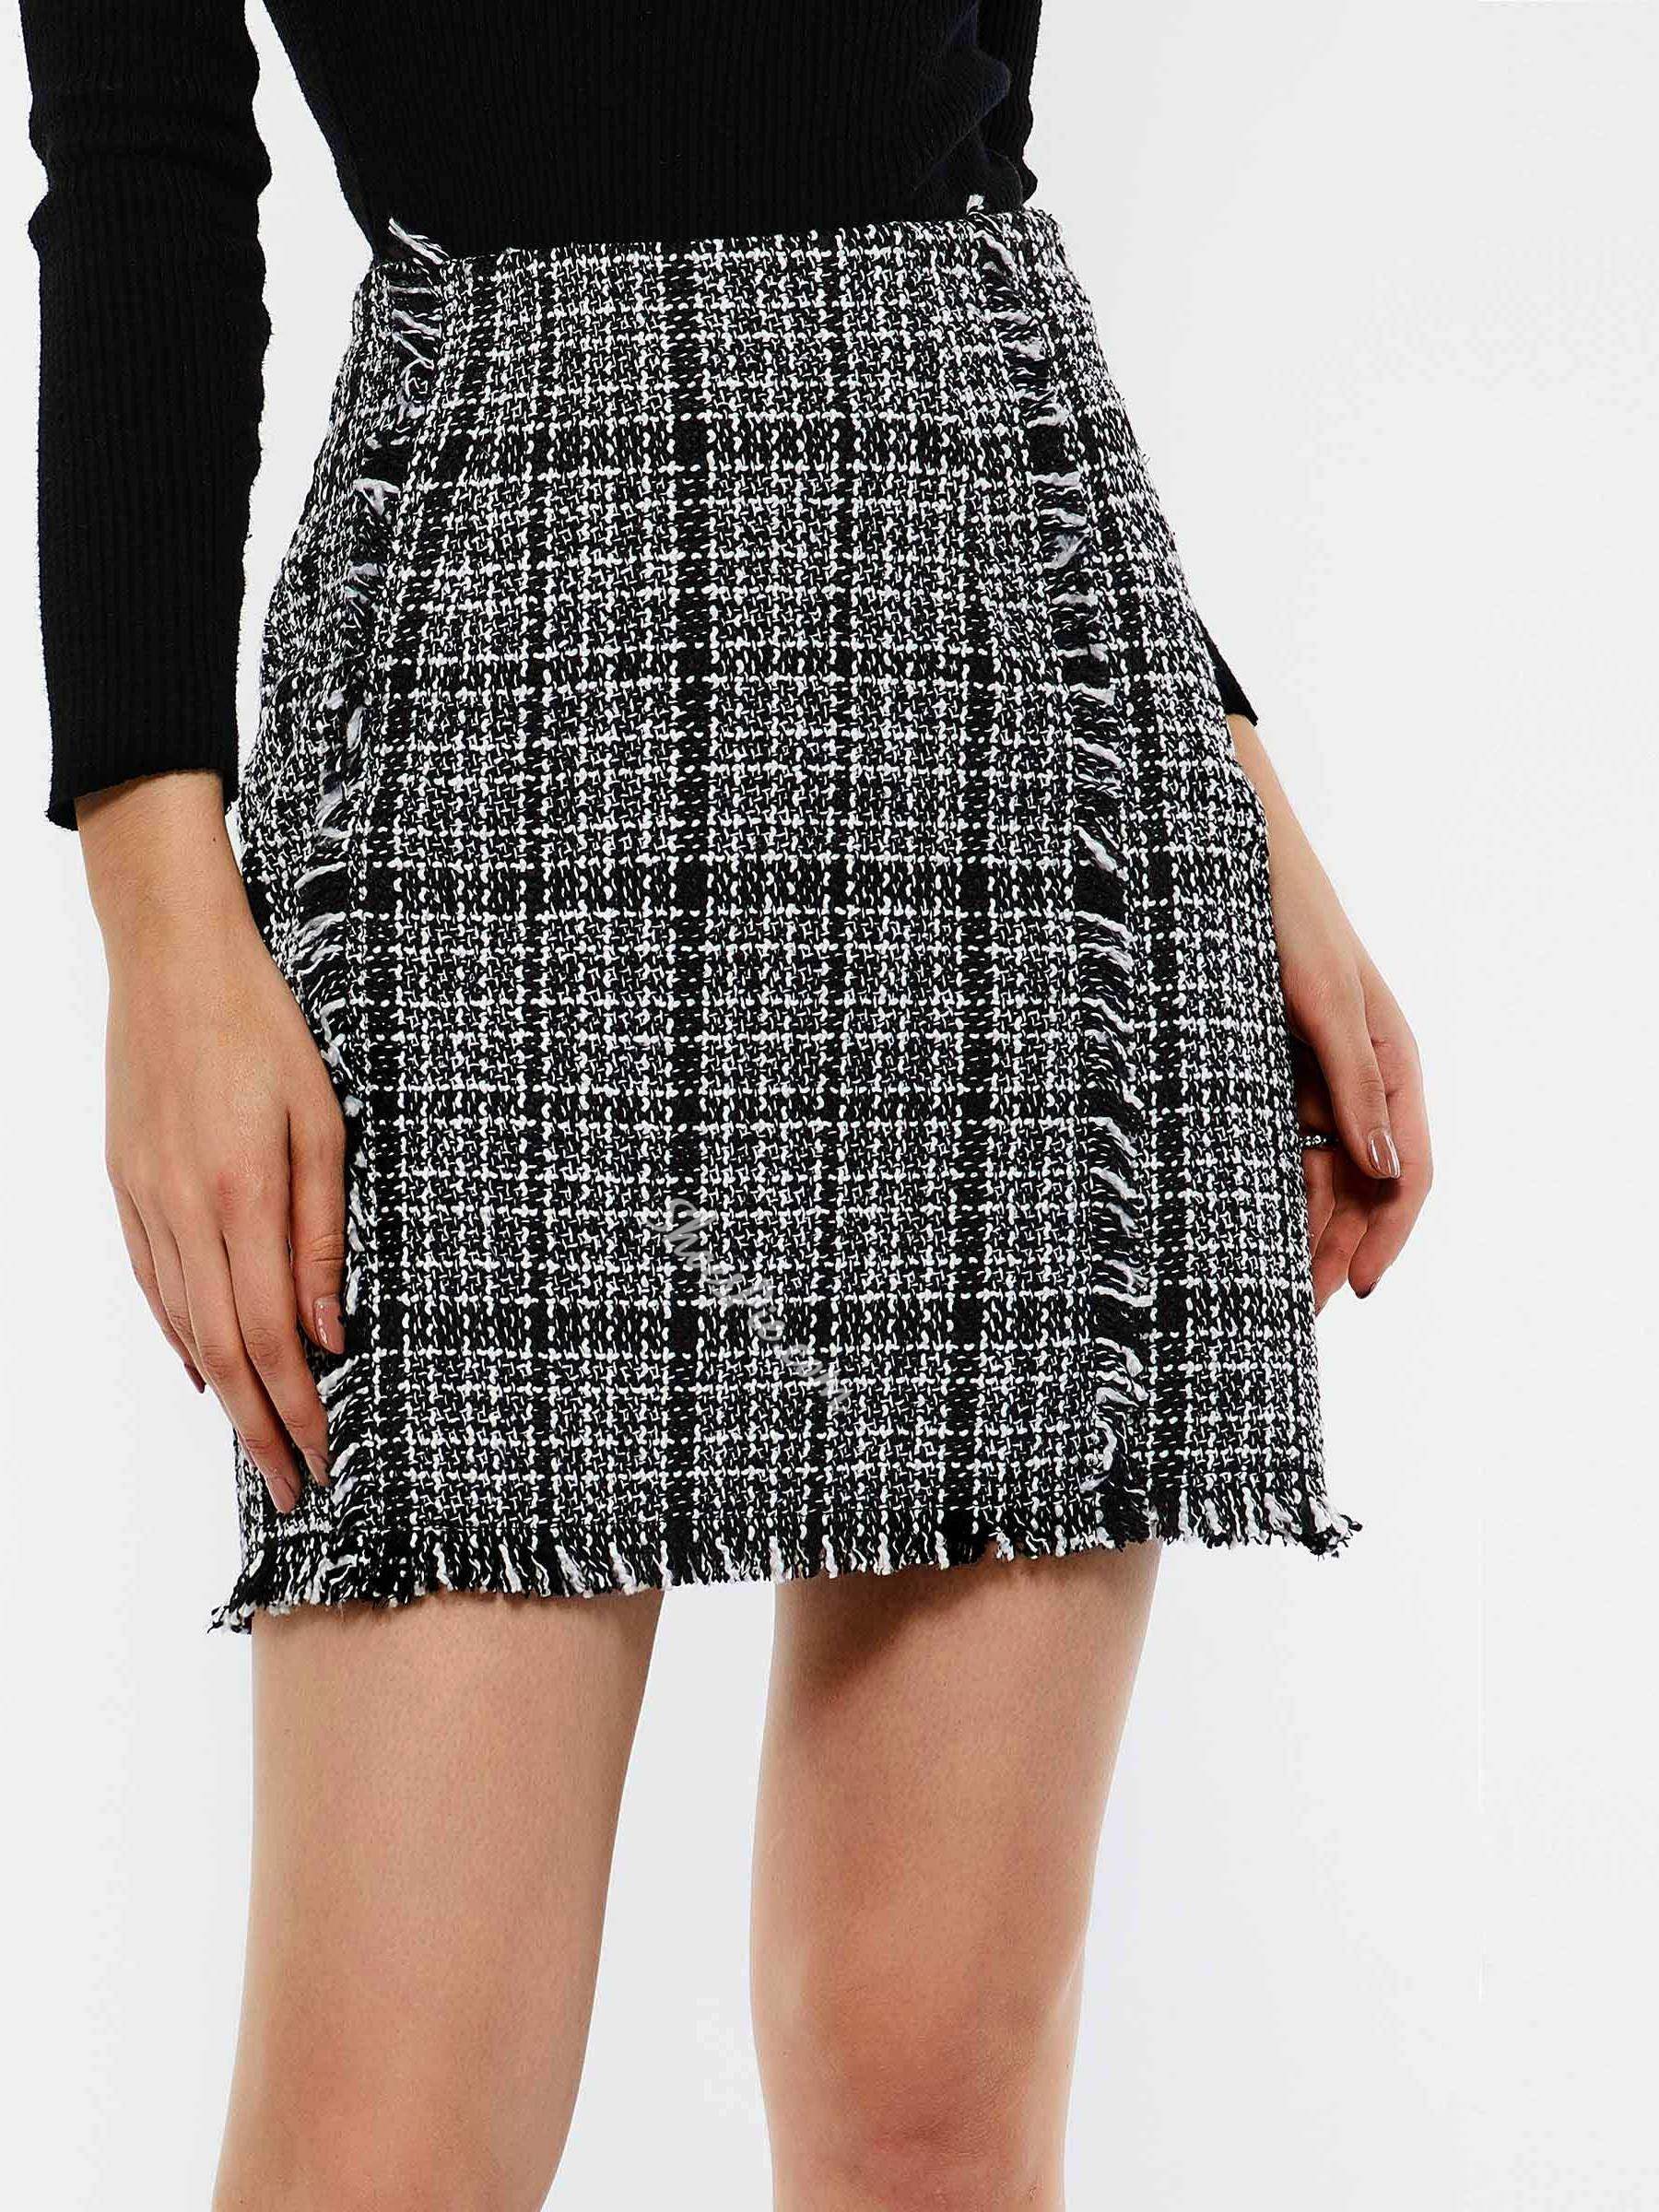 Bodycon Zipper High-Waist Women's Mini Skirt